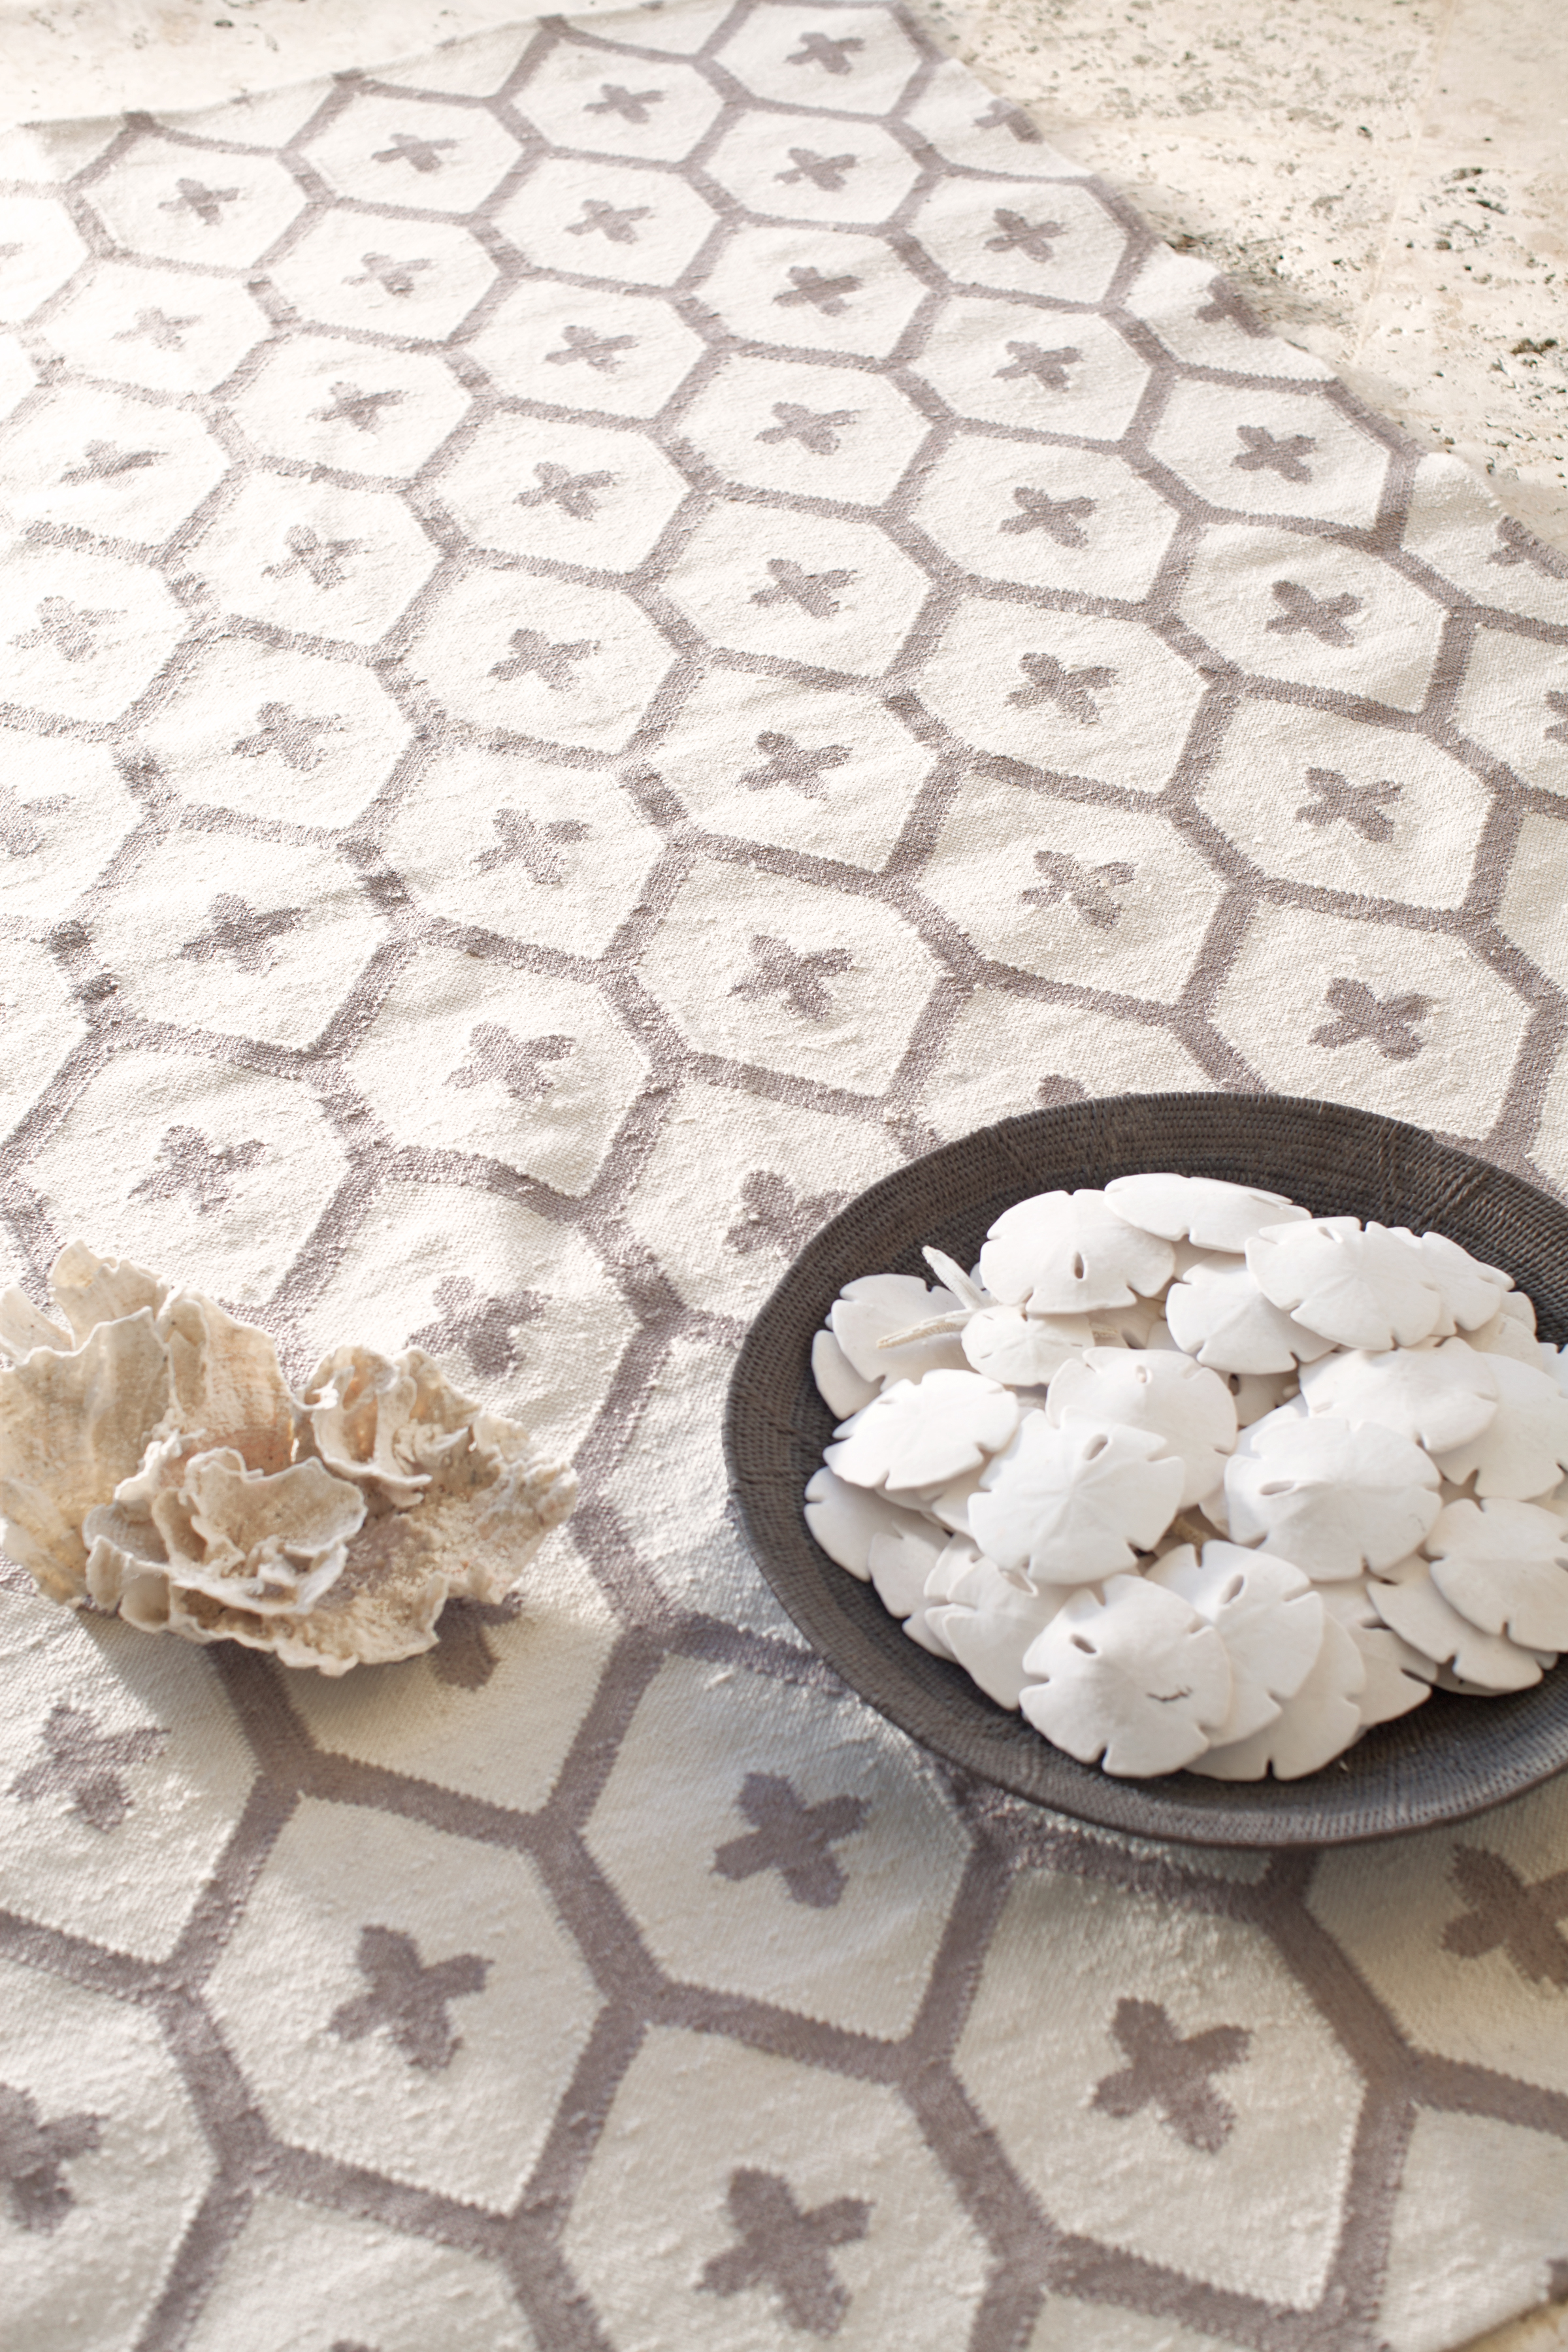 shavings makeover pencil bar annie selke reveal porch rugs fermob rug studio cart studiopencil